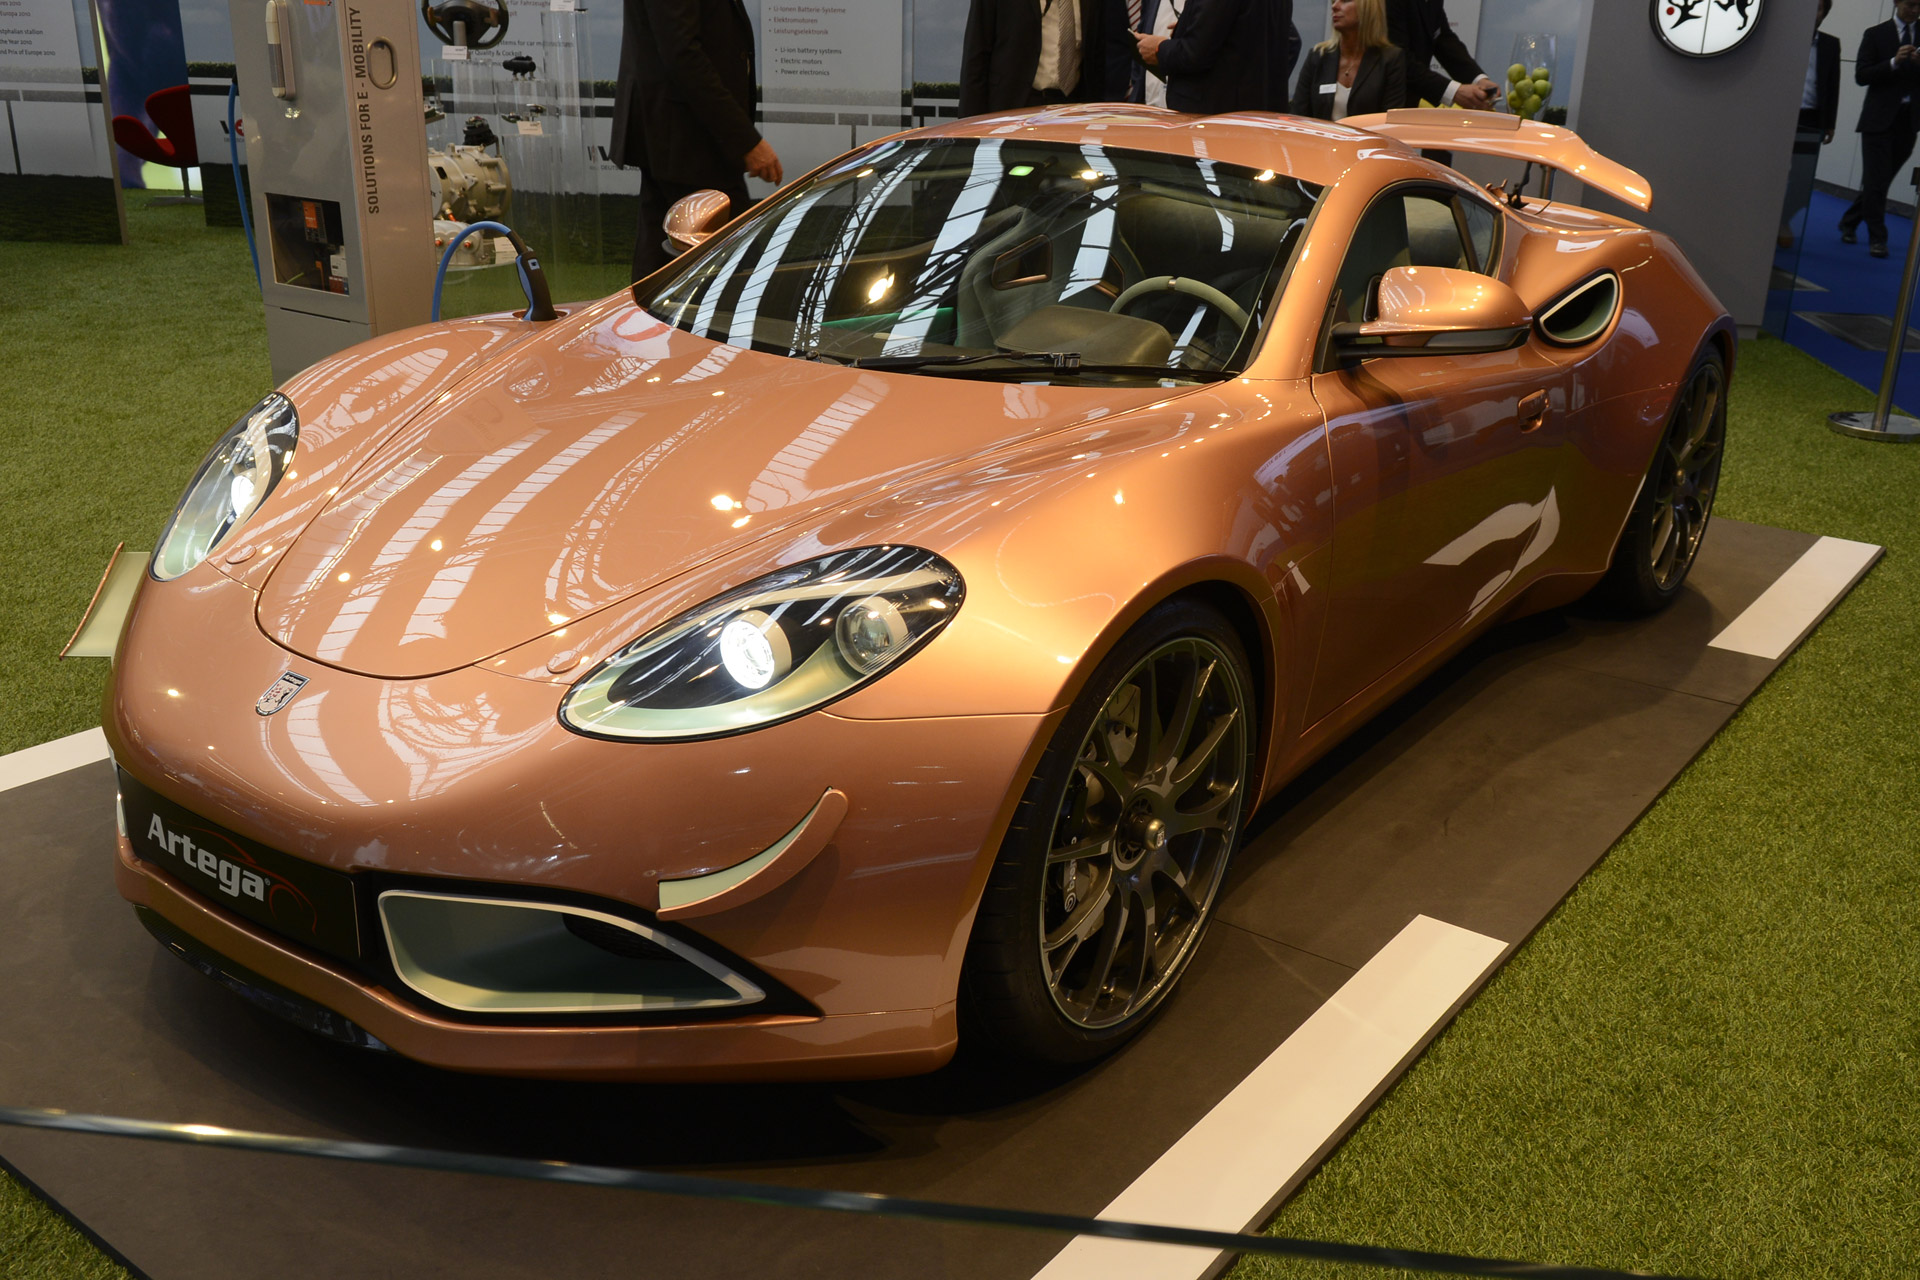 Germany Cars: Germany's Artega Reborn As Electric Sports Car And